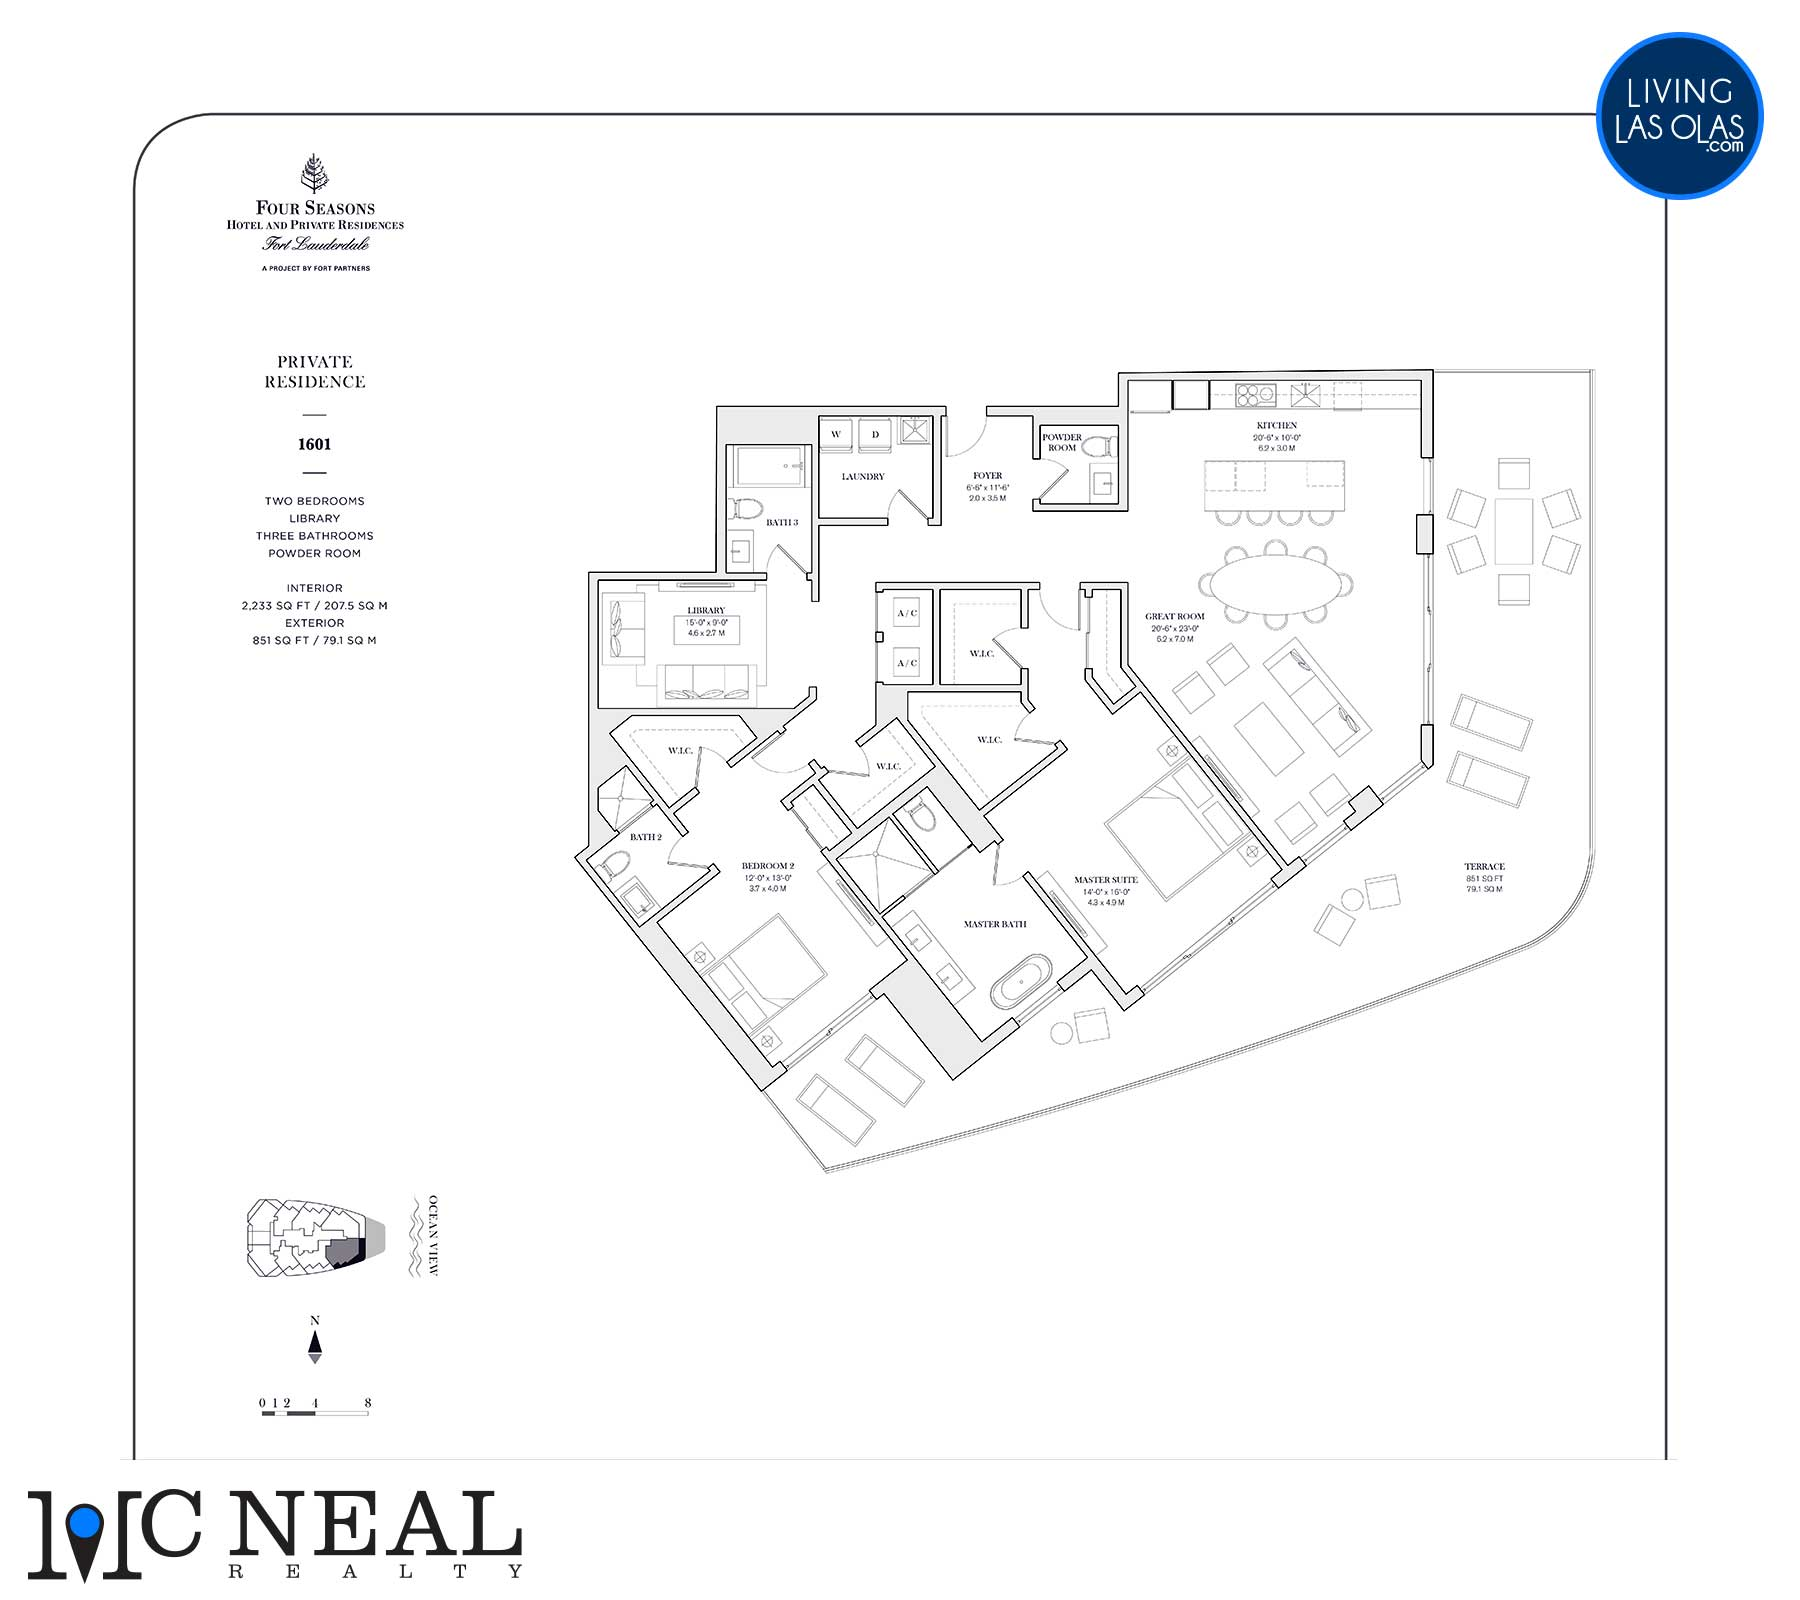 Four Seasons Private Residences Floor Plan 1601